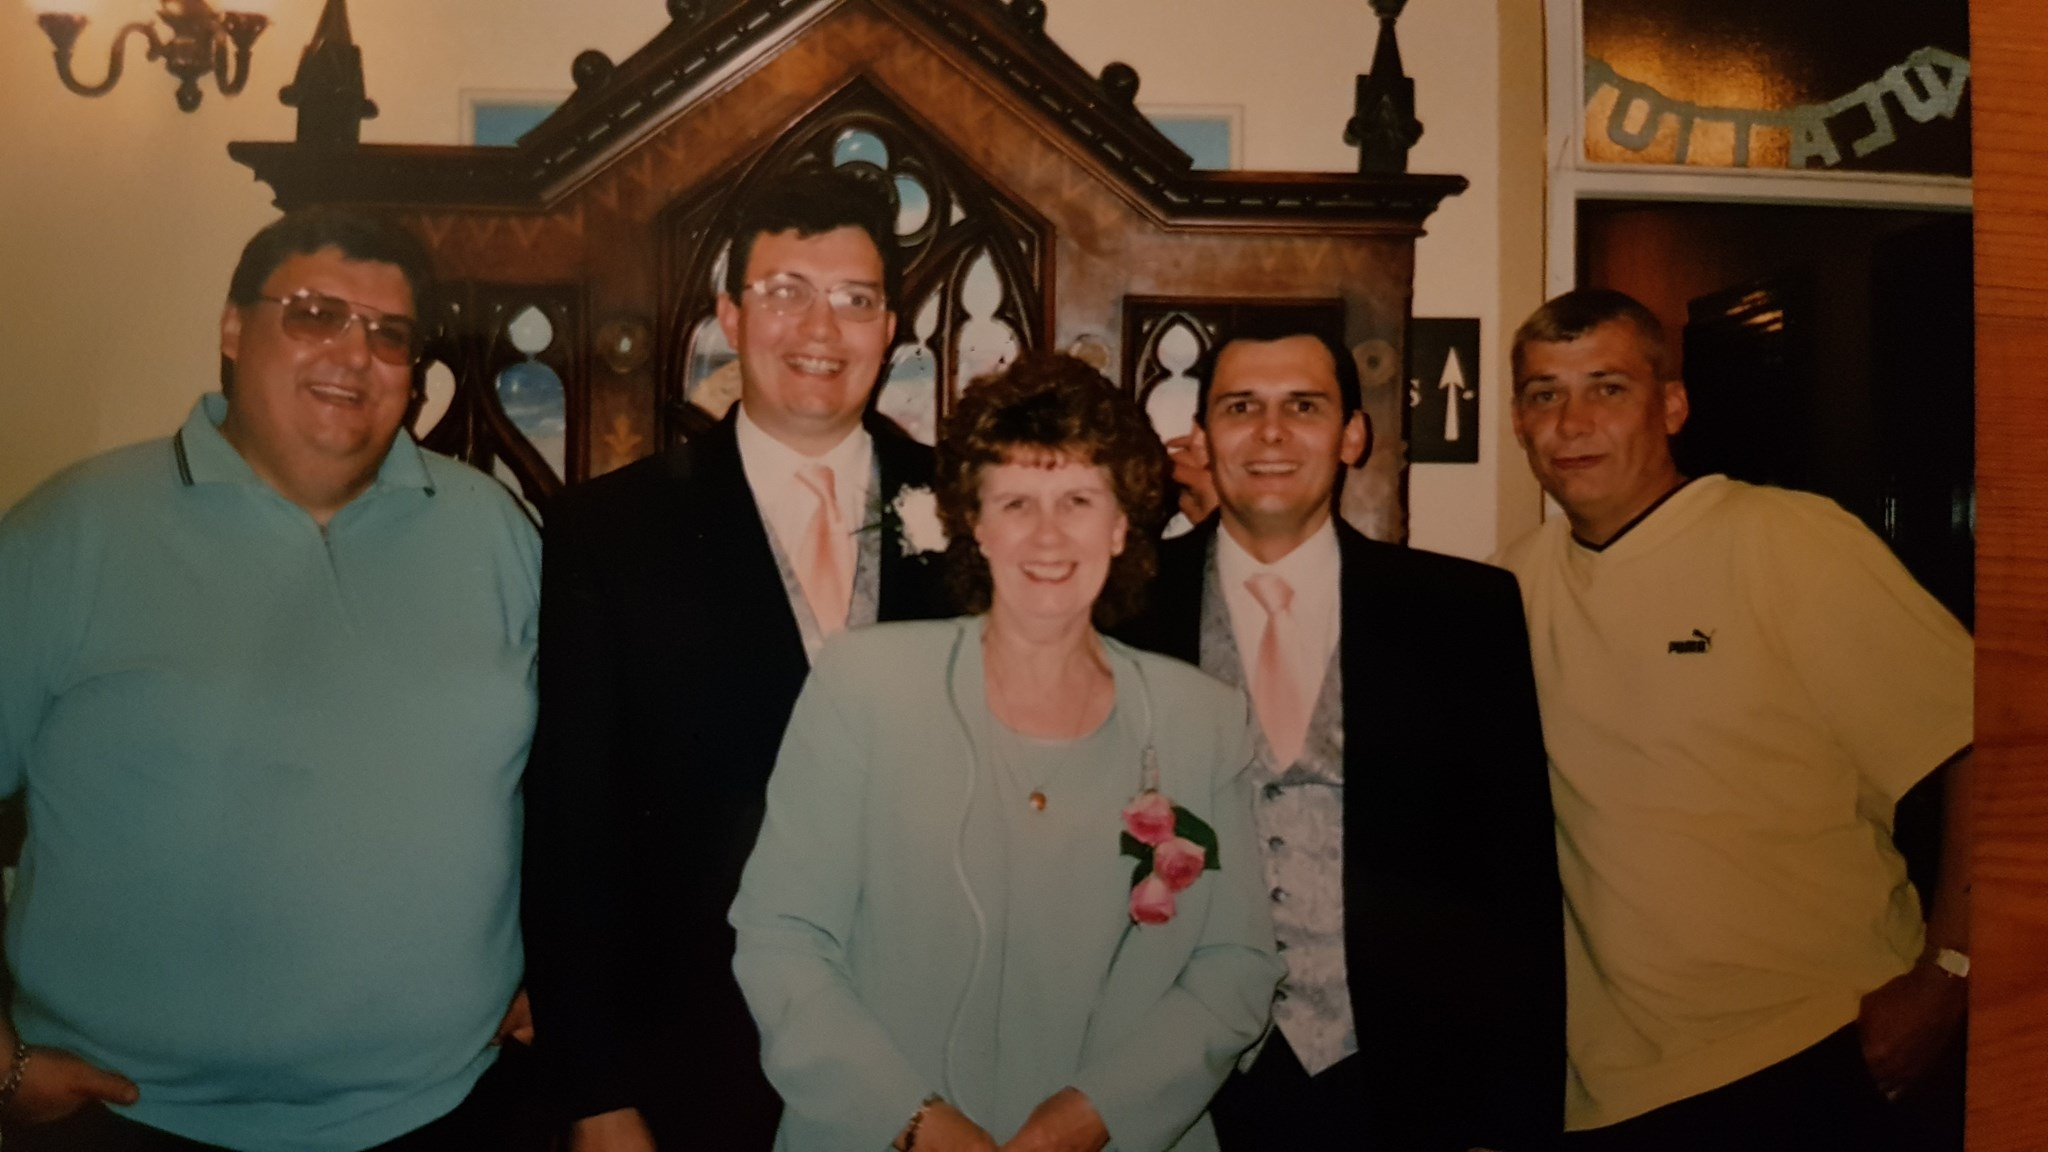 Mum and her four boys